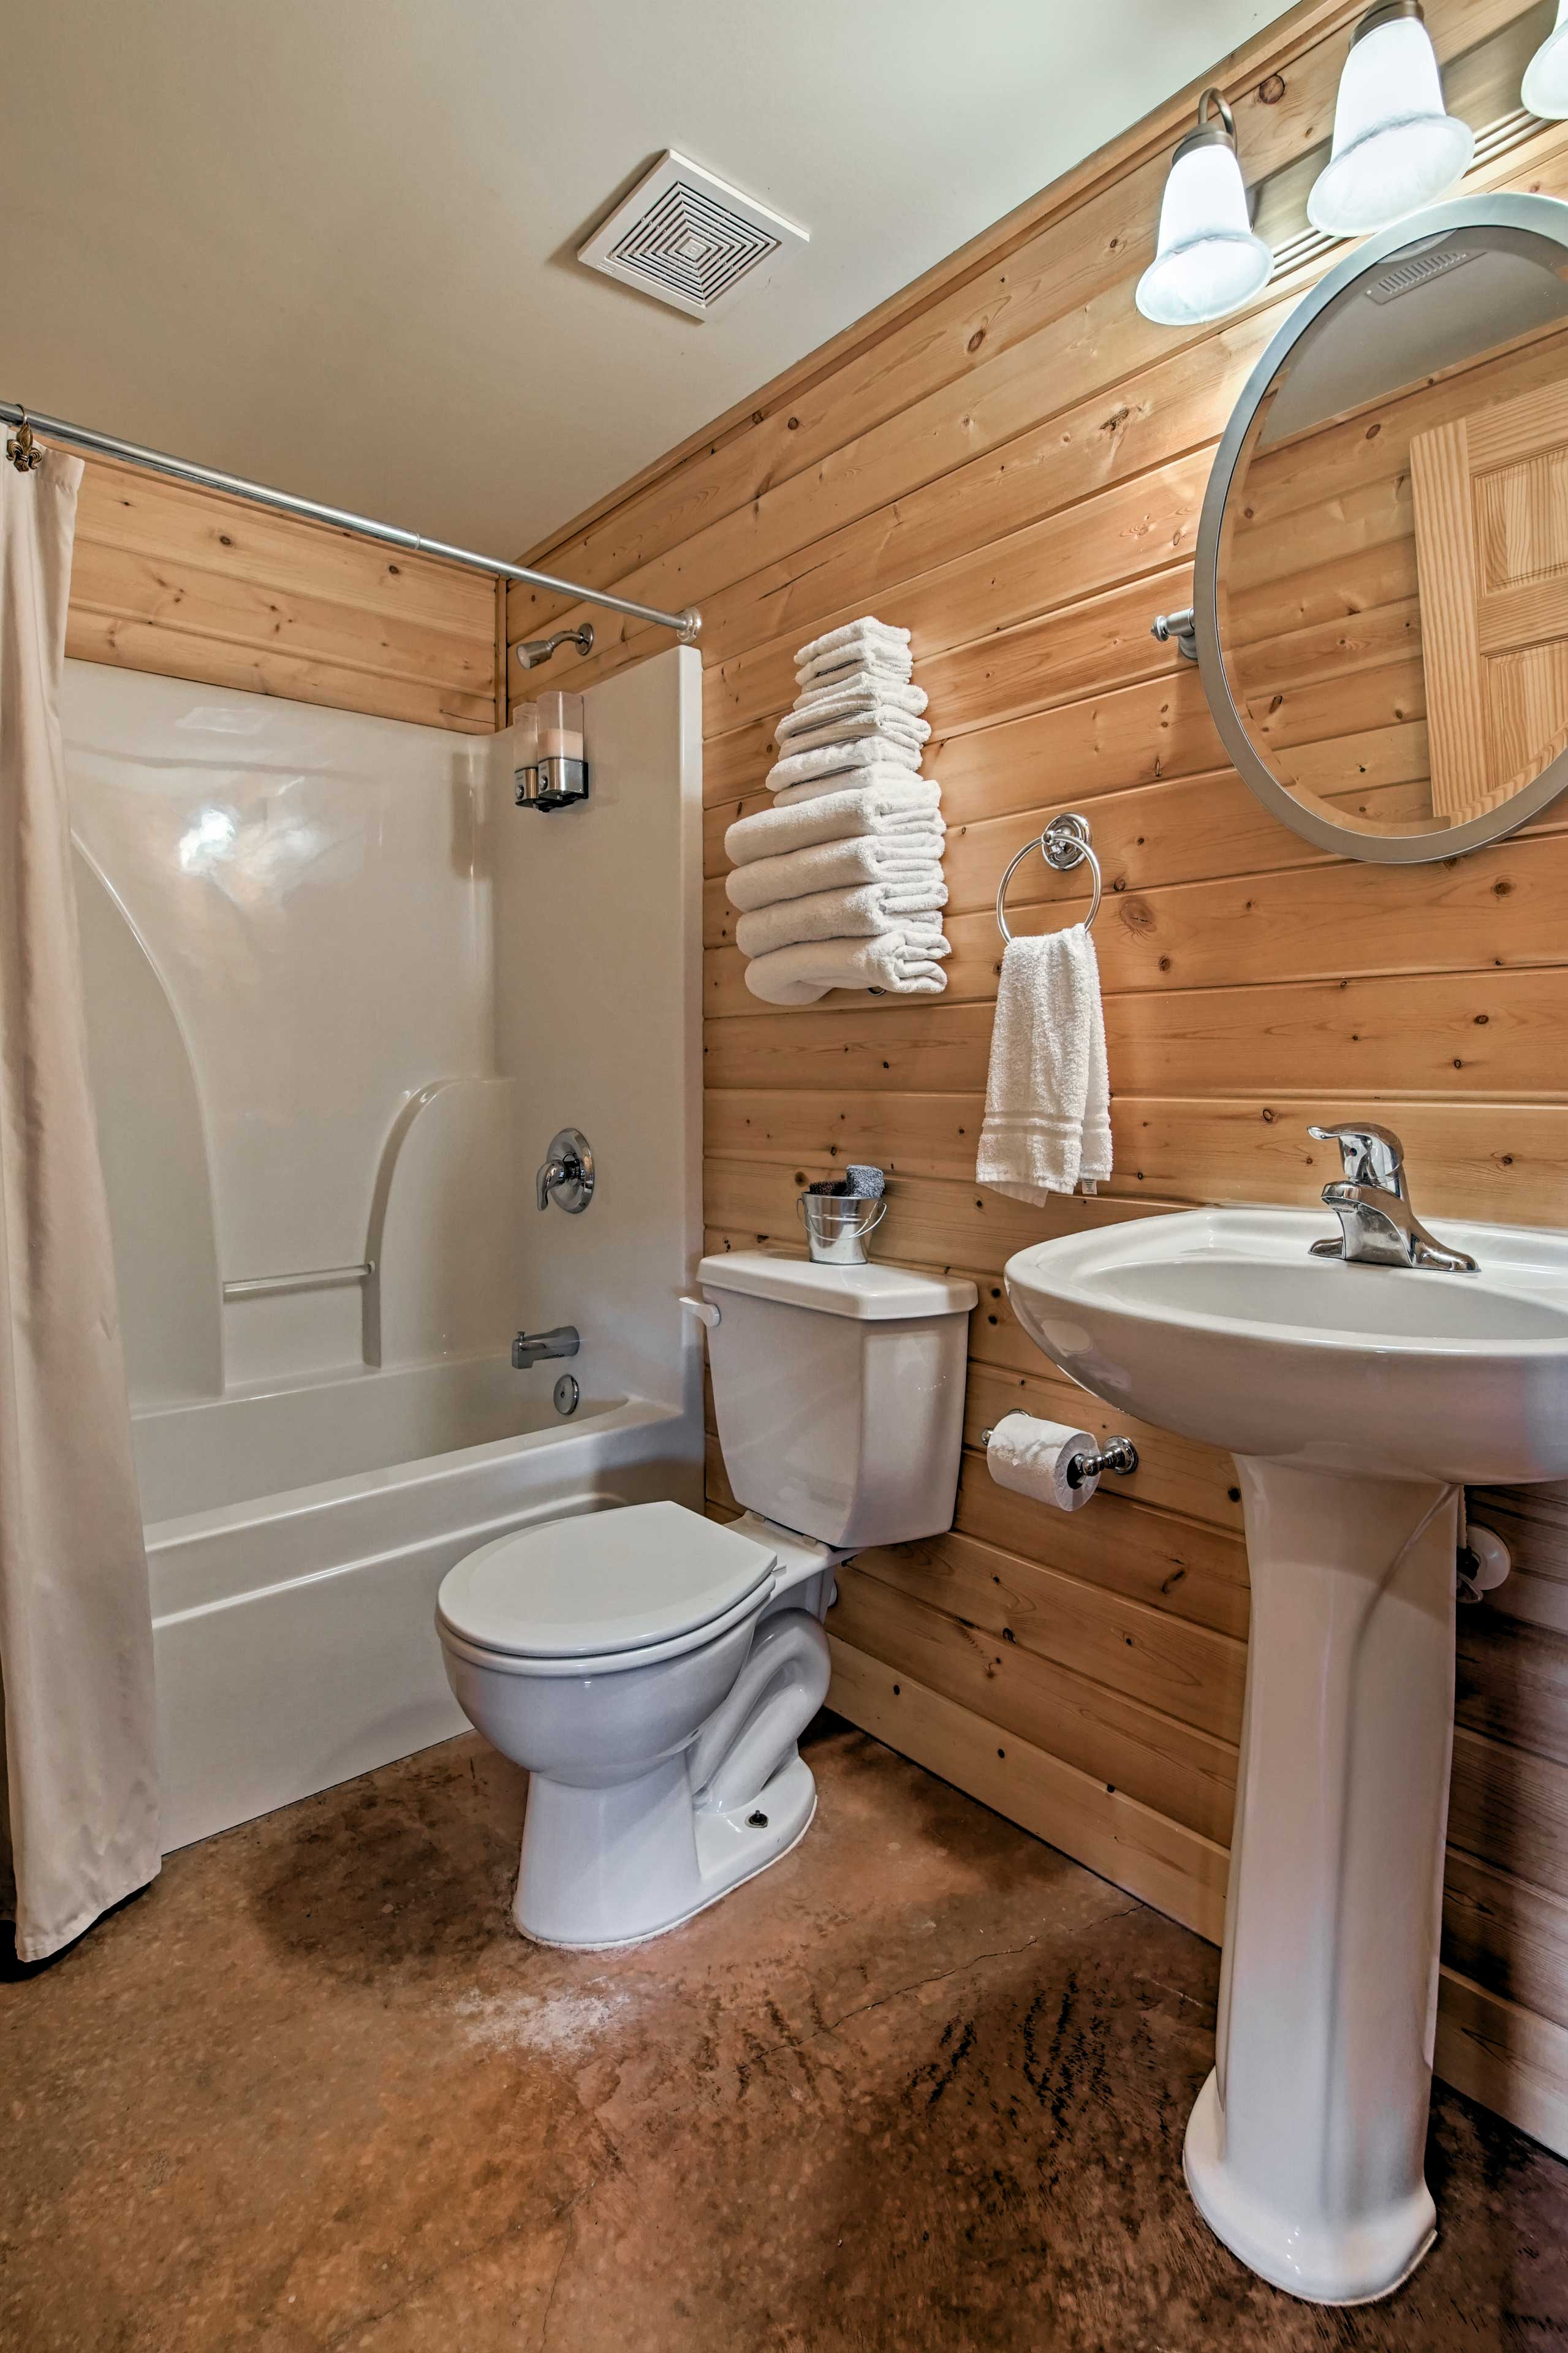 A shower/tub combo and plenty of towels are in the bathroom.